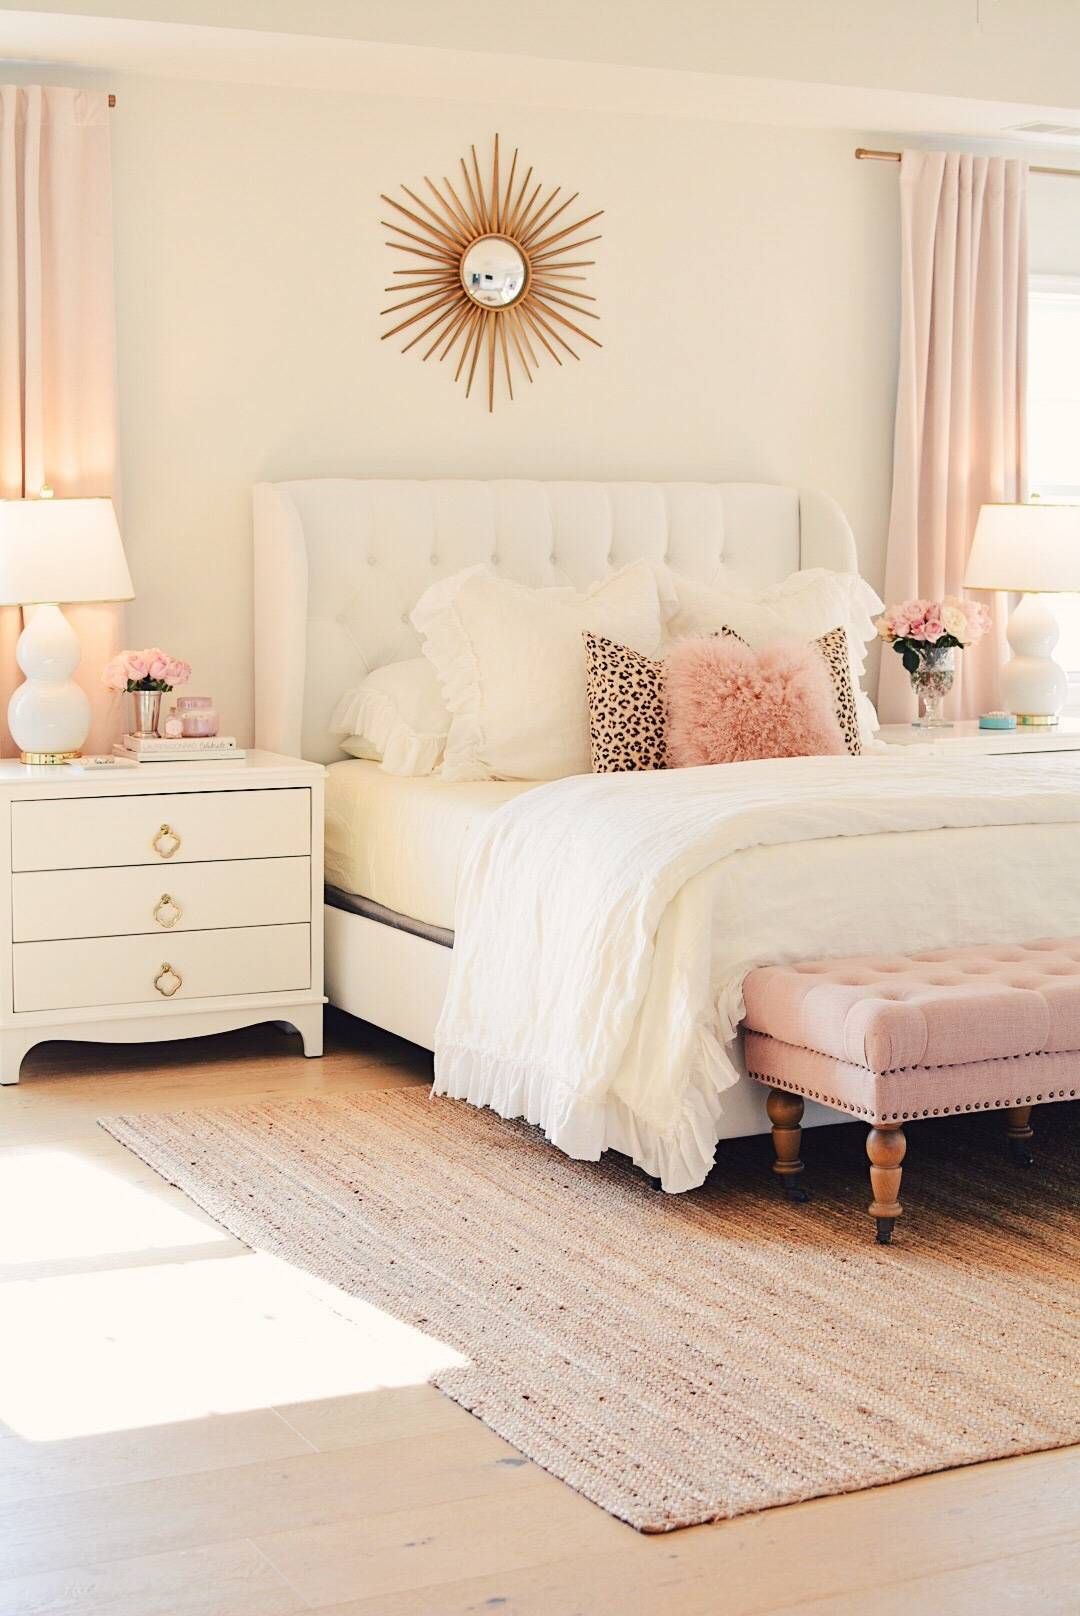 Bedroom Decor Ideas: A Romantic Master Bedroom Makeover - The Pink